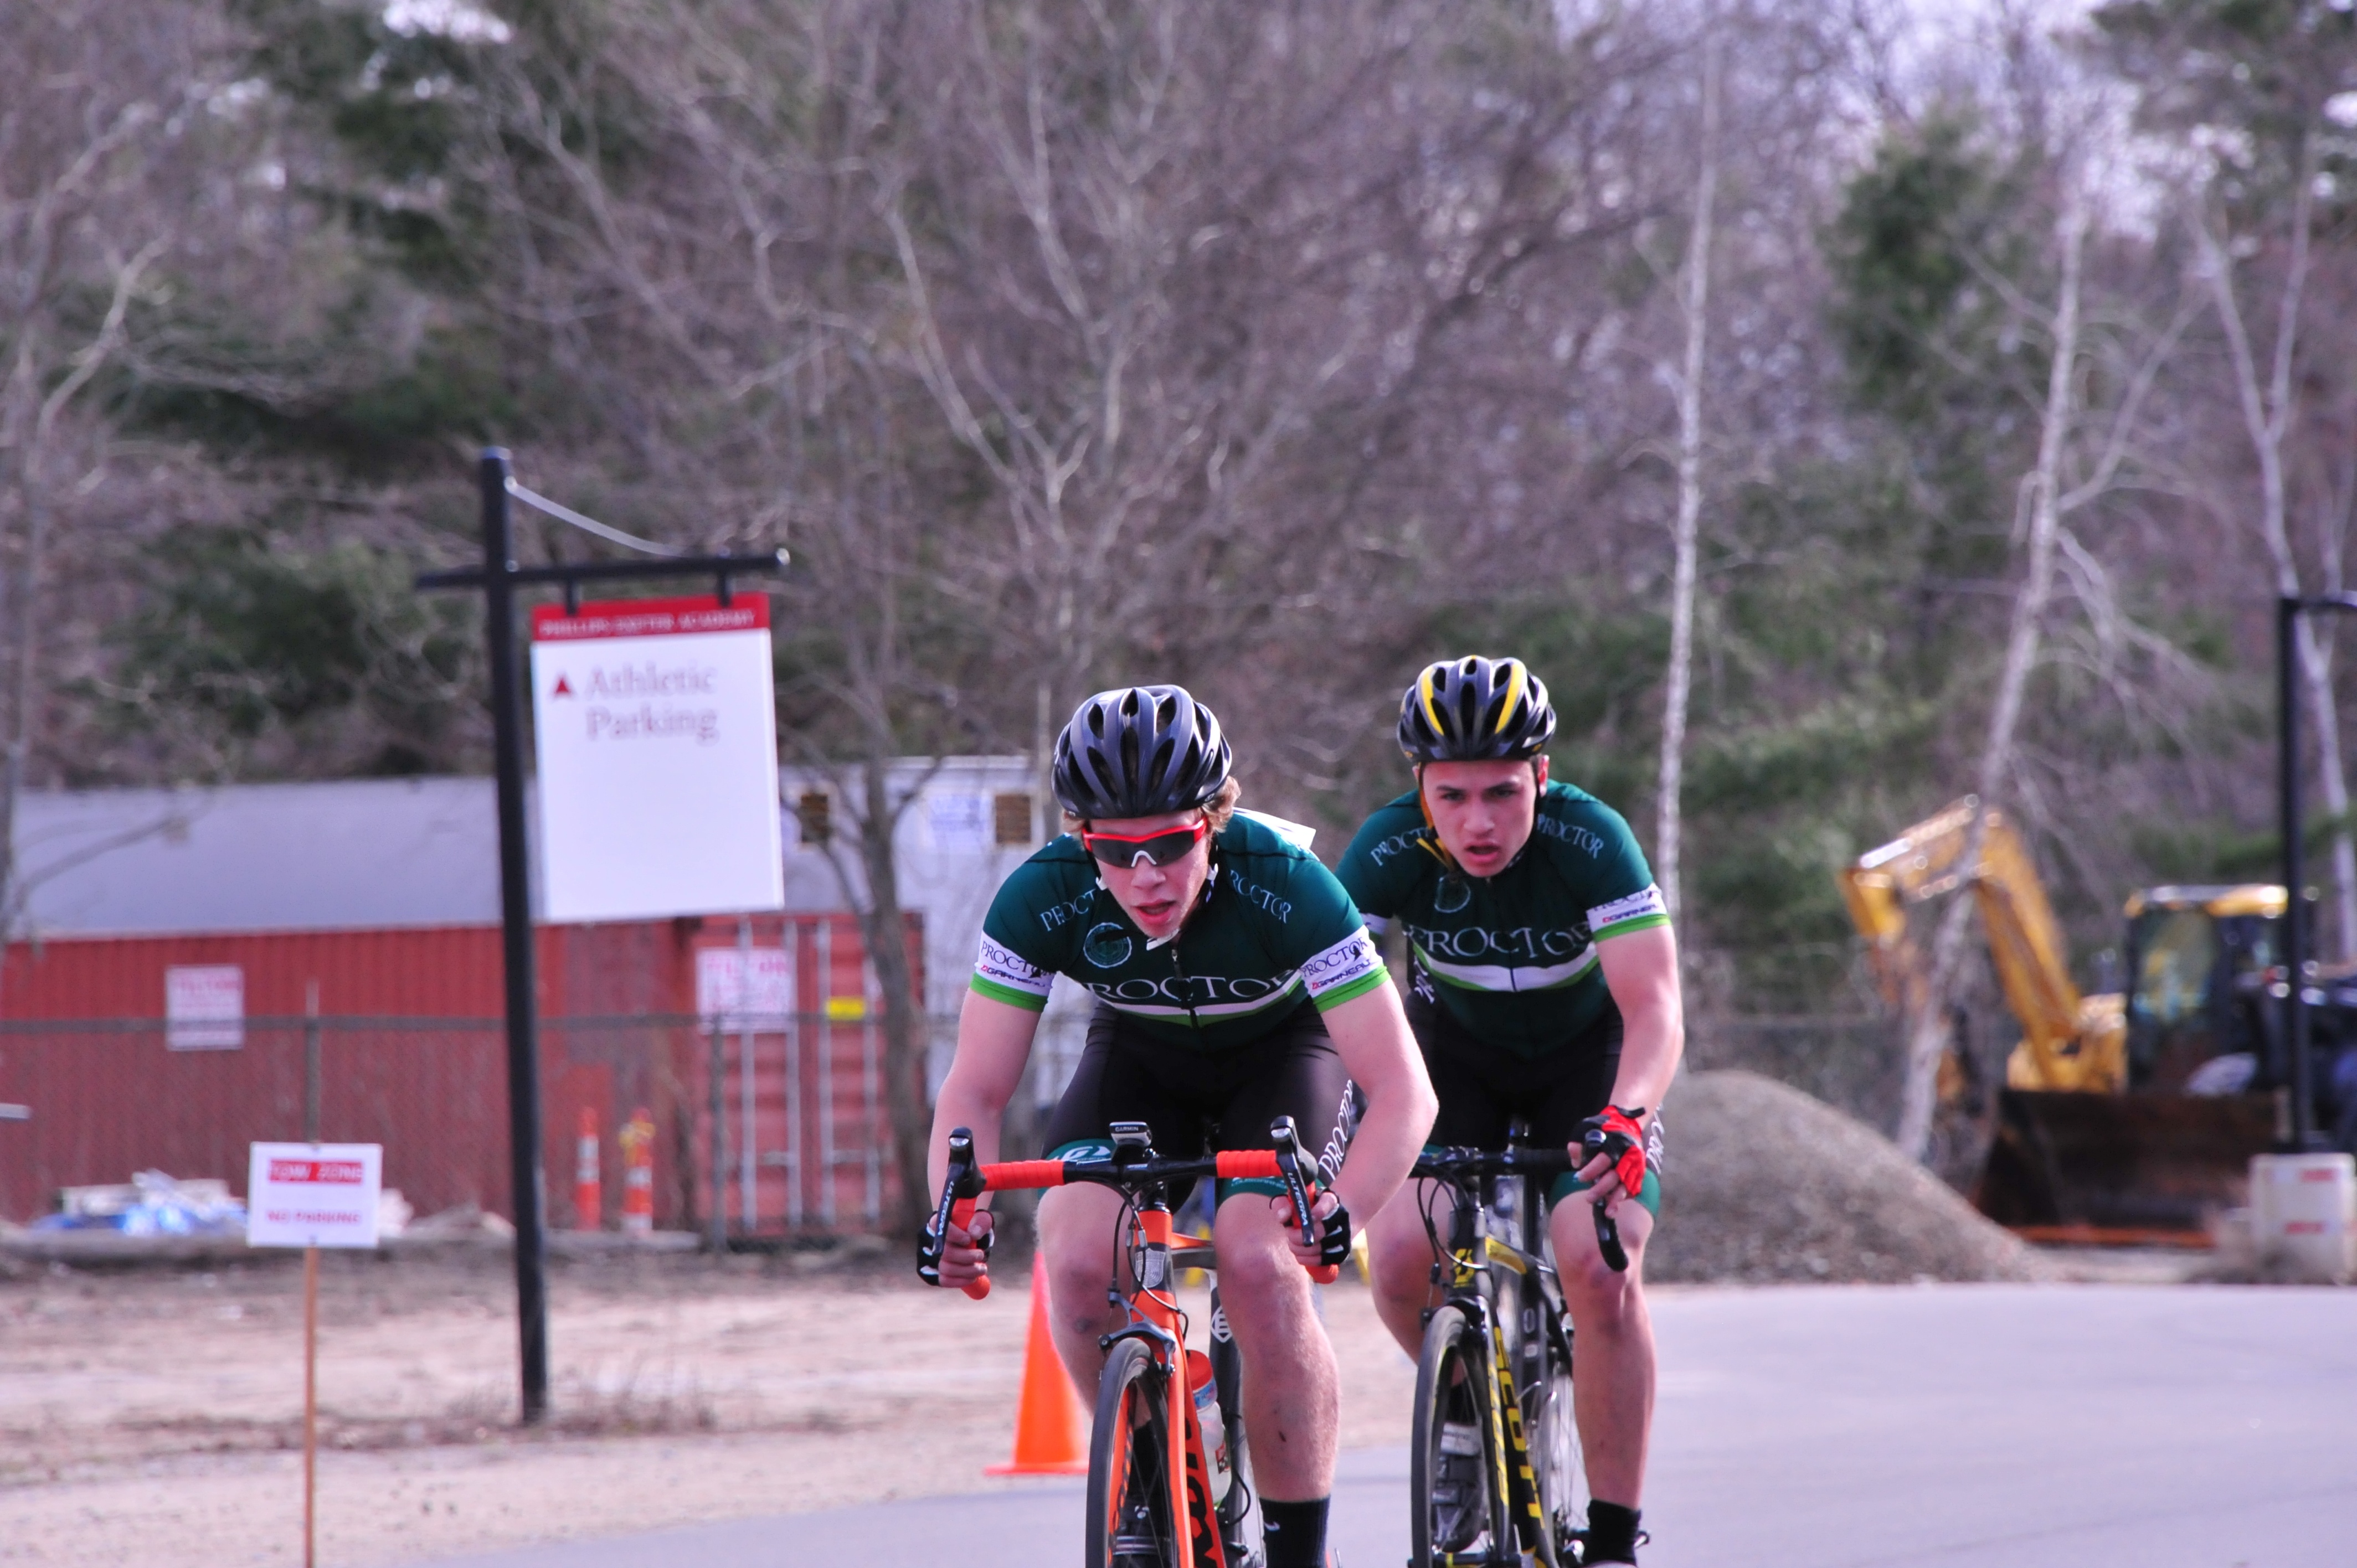 Proctor Academy cycling